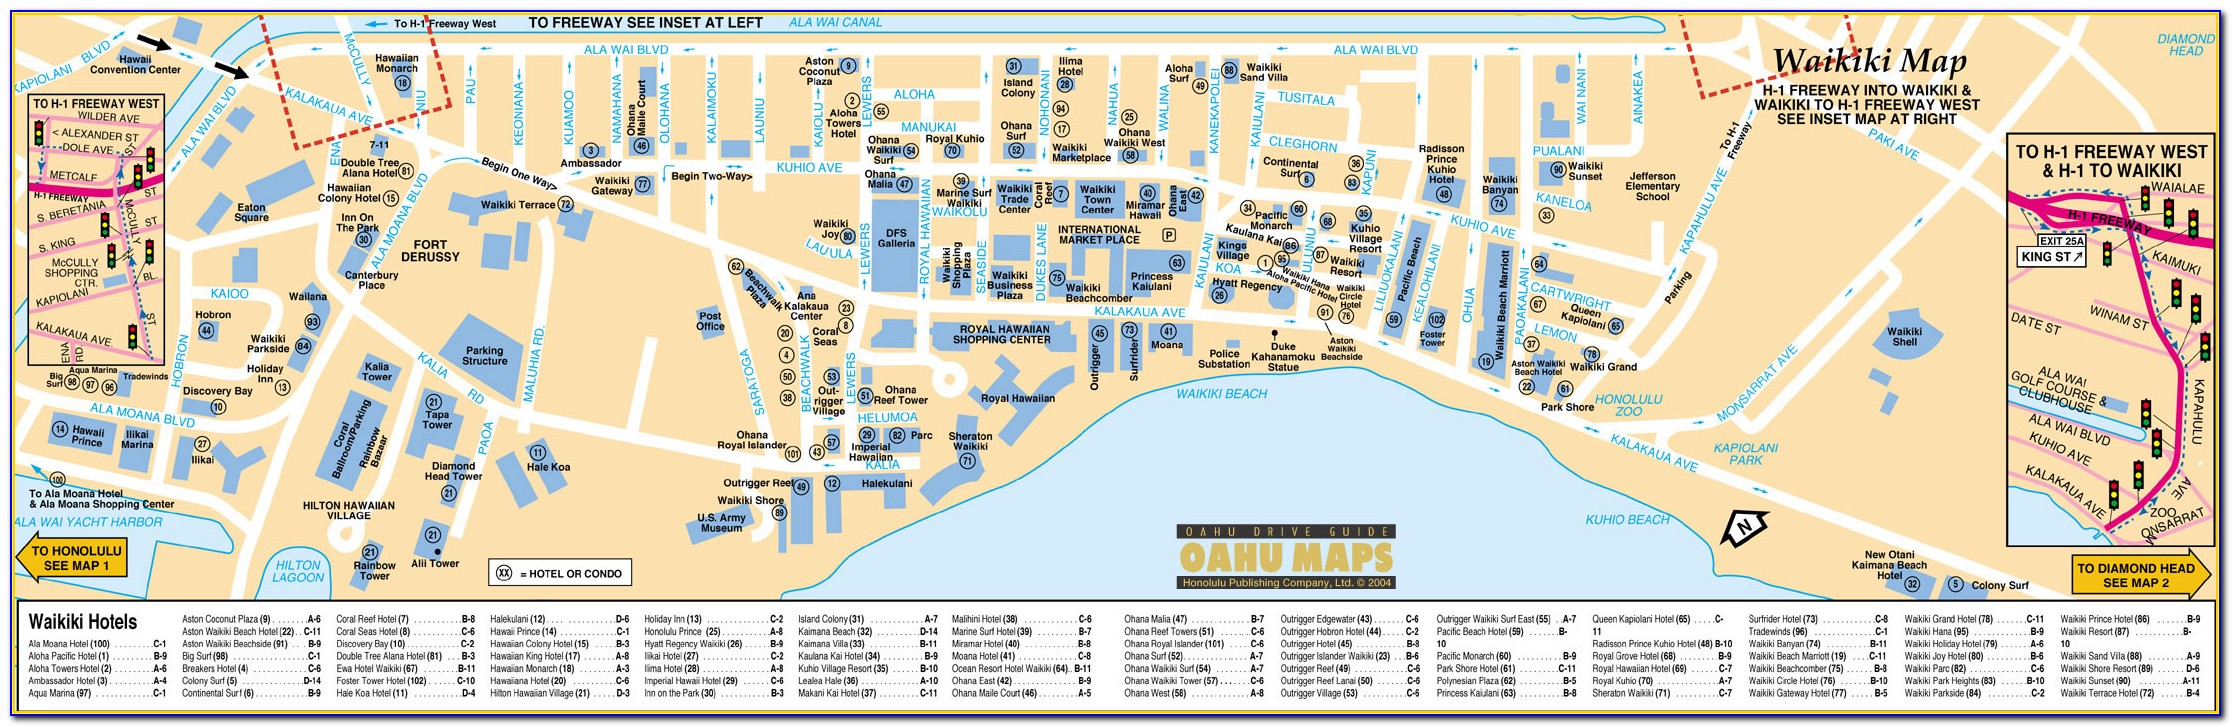 Printable Map Of Waikiki Hotels